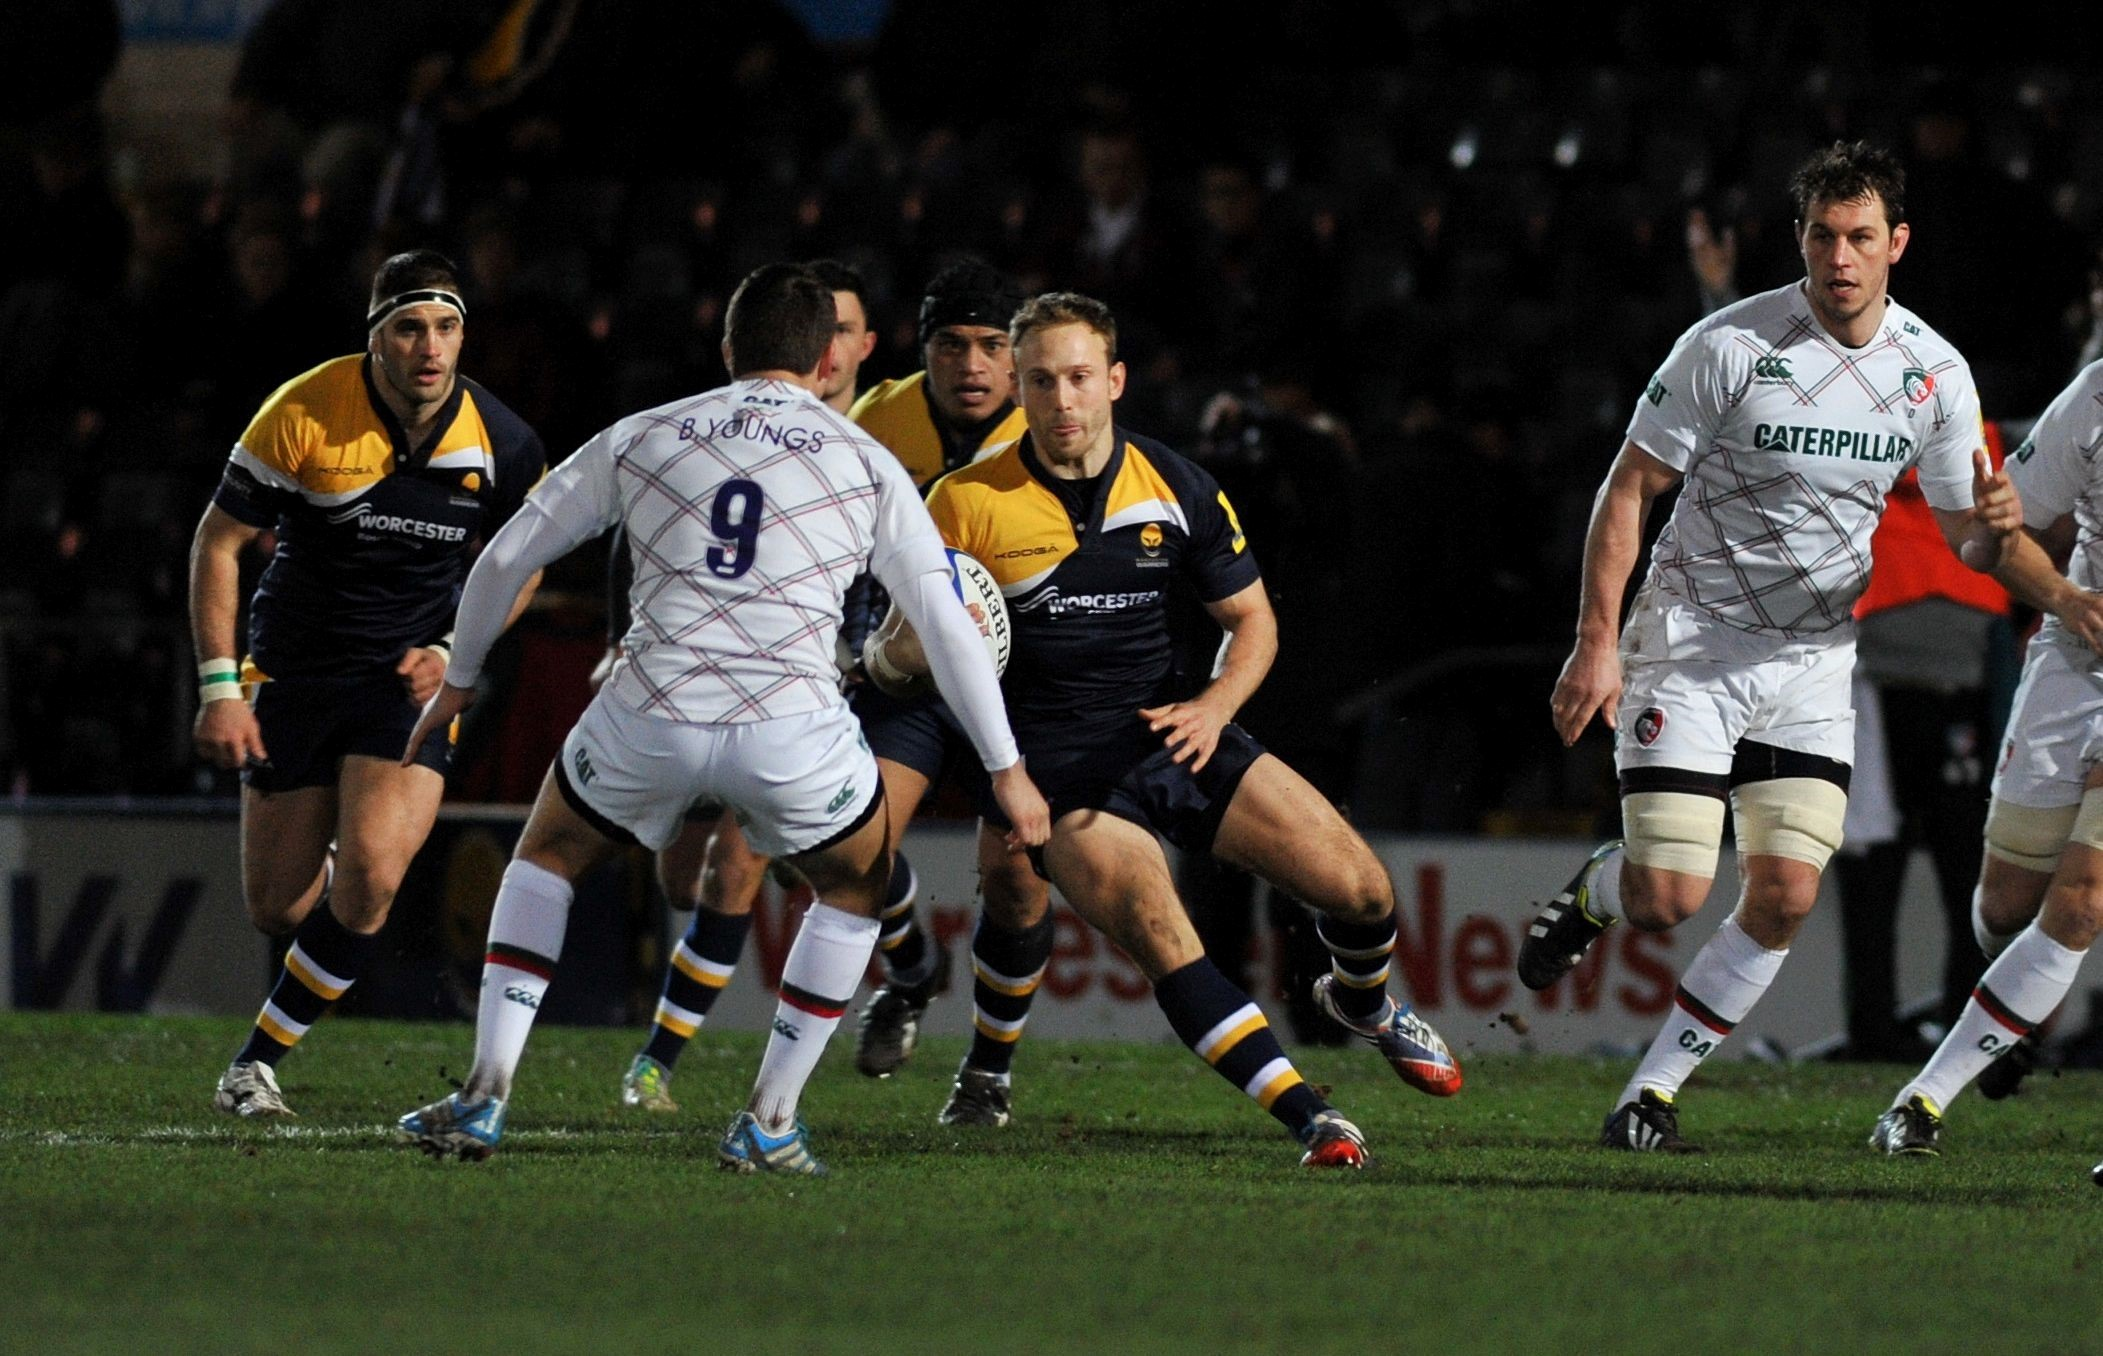 INFLUENTIAL DISPLAY: Home-grown full-back Chris Pennell on the ball during a superb performance for Worcester Warriors in their narrow defeat to last season's play-off champions Leicester Tigers. Picture: PAUL JACKSON. 06144516701